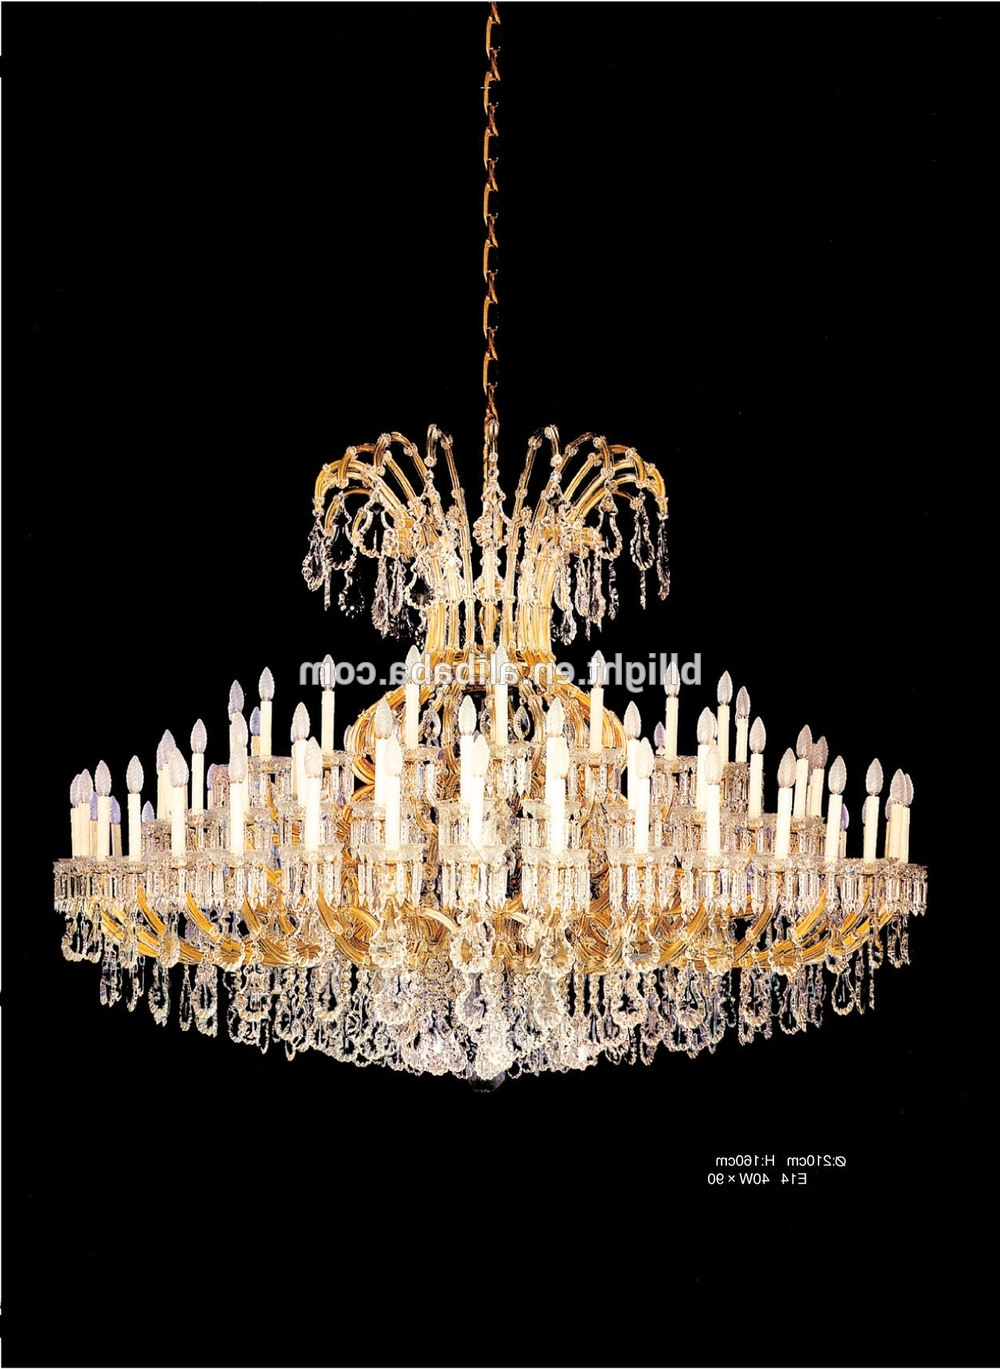 Remote Controlled Chandelier With Current Remote Control Led Chandelier, Remote Control Led Chandelier (View 5 of 20)